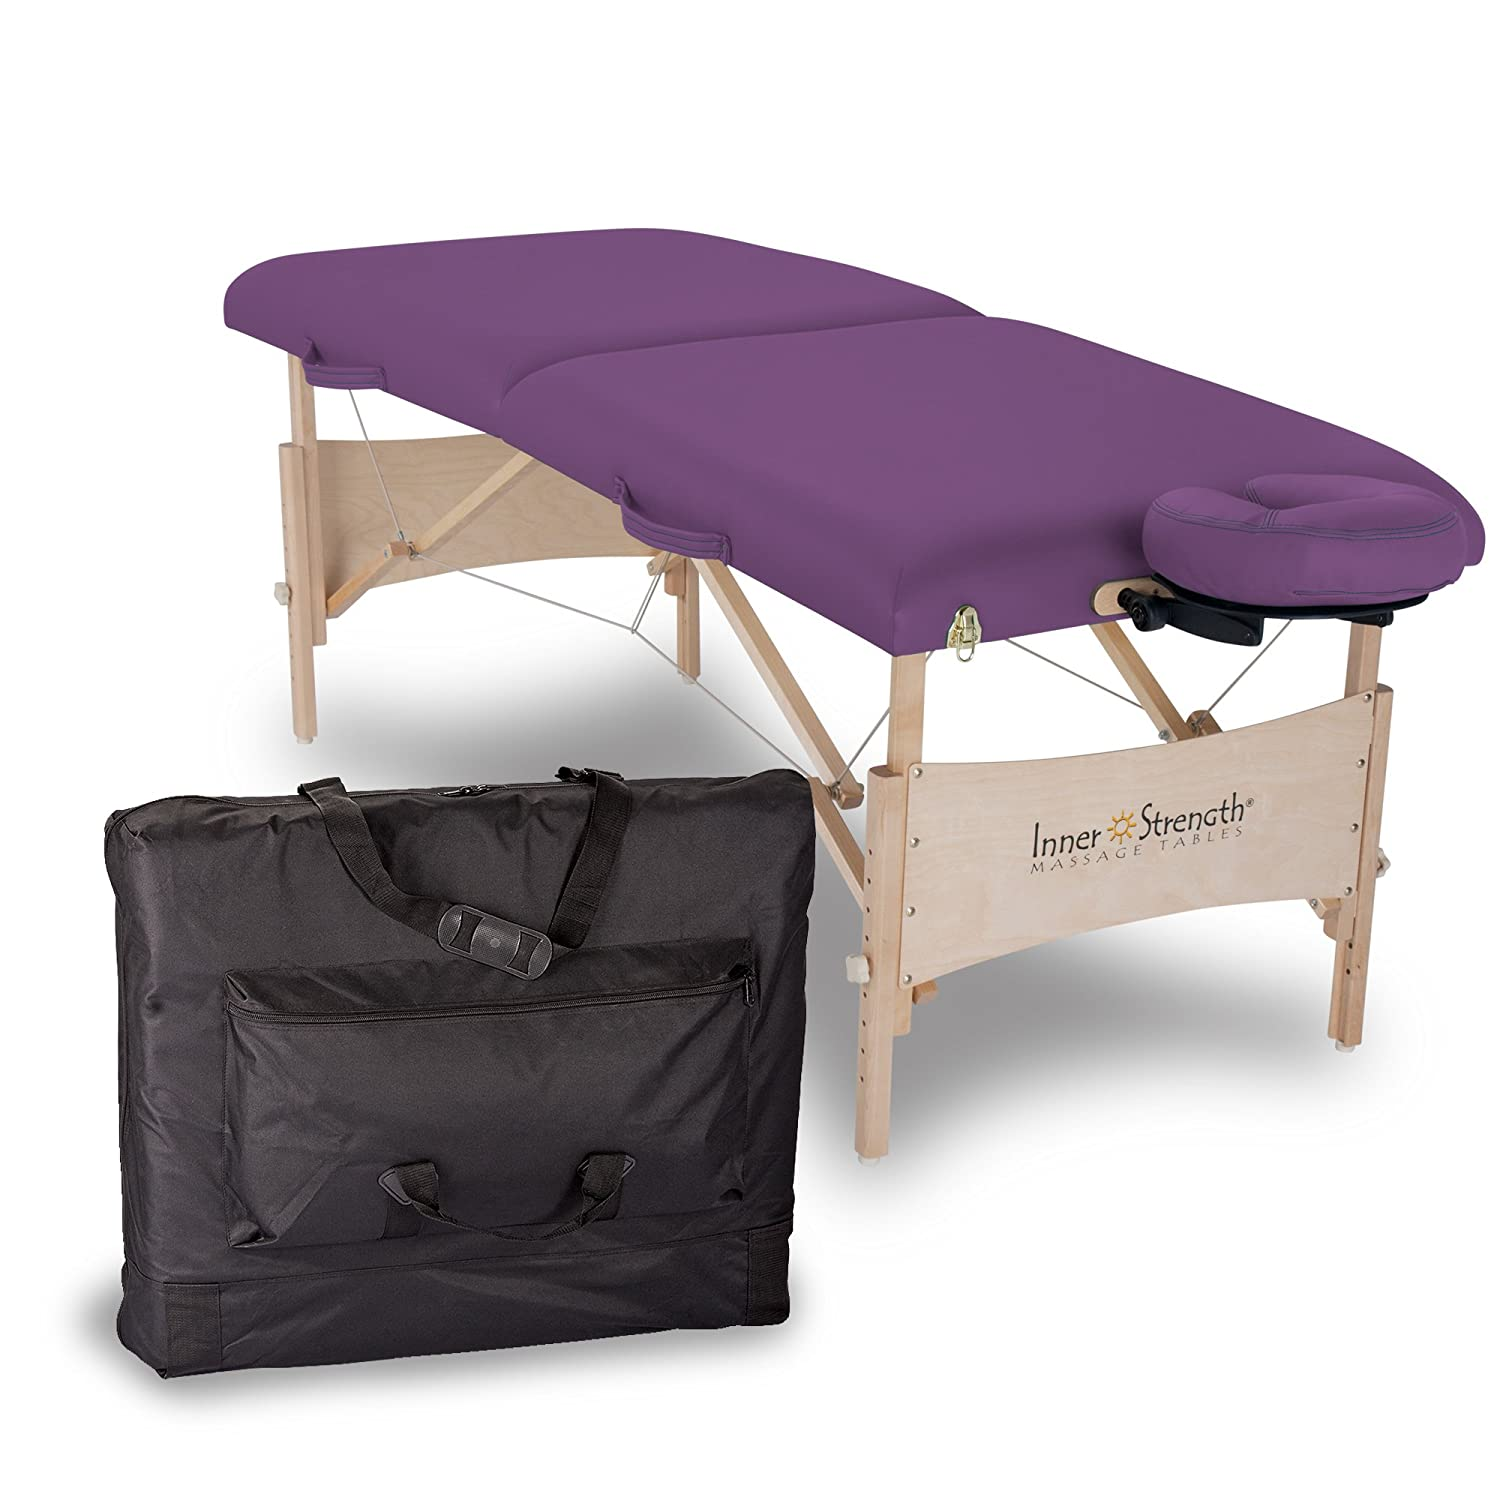 INNER STRENGTH Portable Massage Table Package ELEMENT – Incl. Deluxe Adjustable Face Cradle, Face Pillow & Carrying Case Earthlite 20265